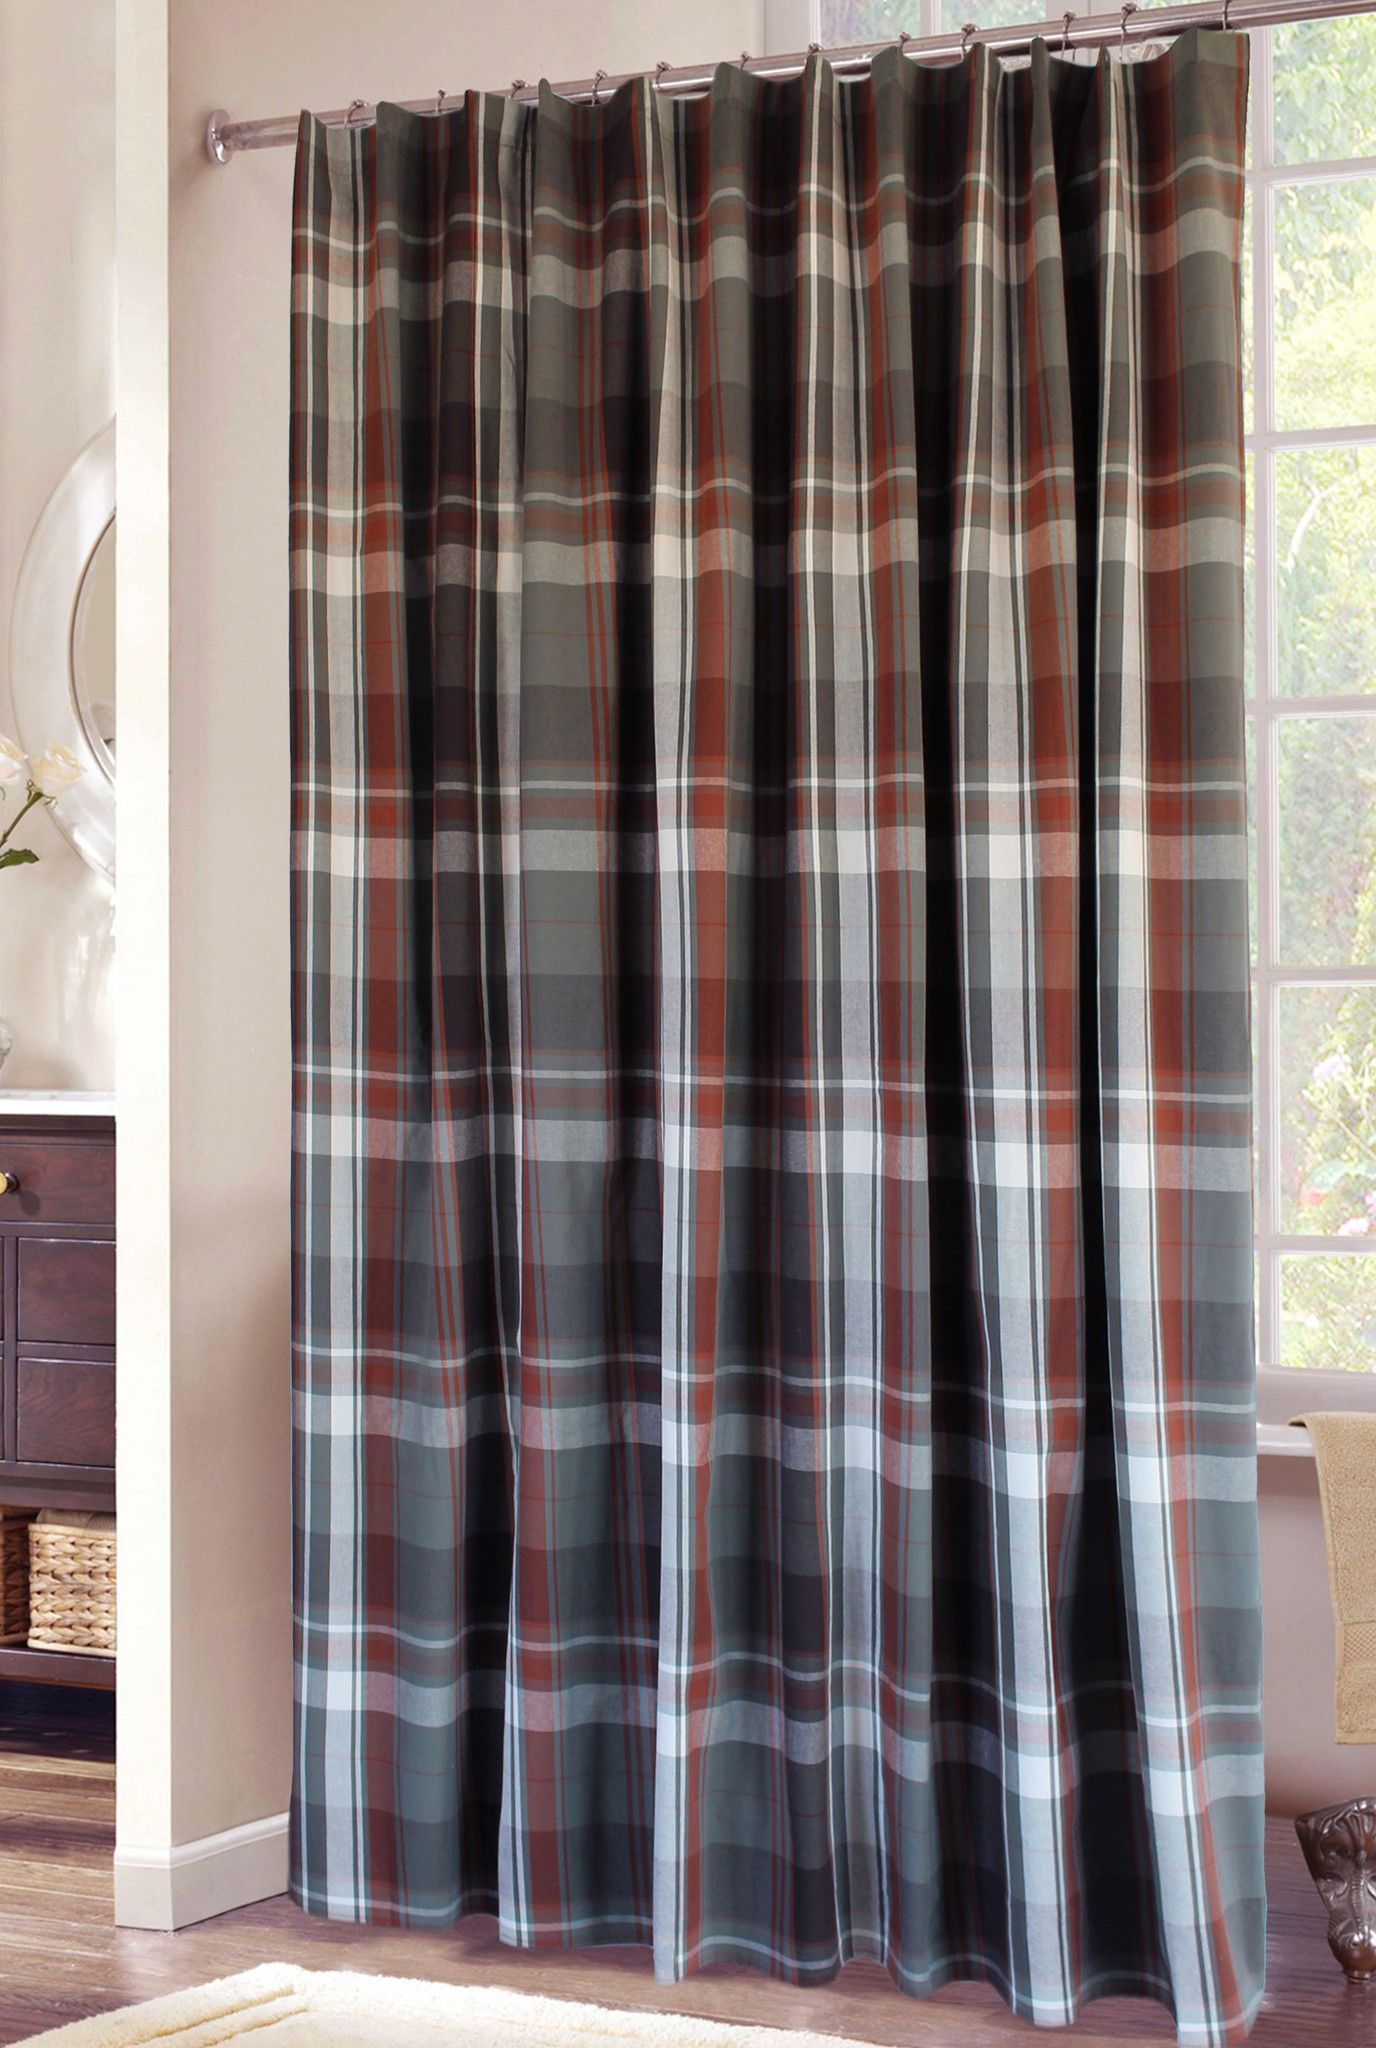 curtains luxury size of themed stylish intended residence for curtain cabin outdoor full ideas shower pmcshop stock cabins